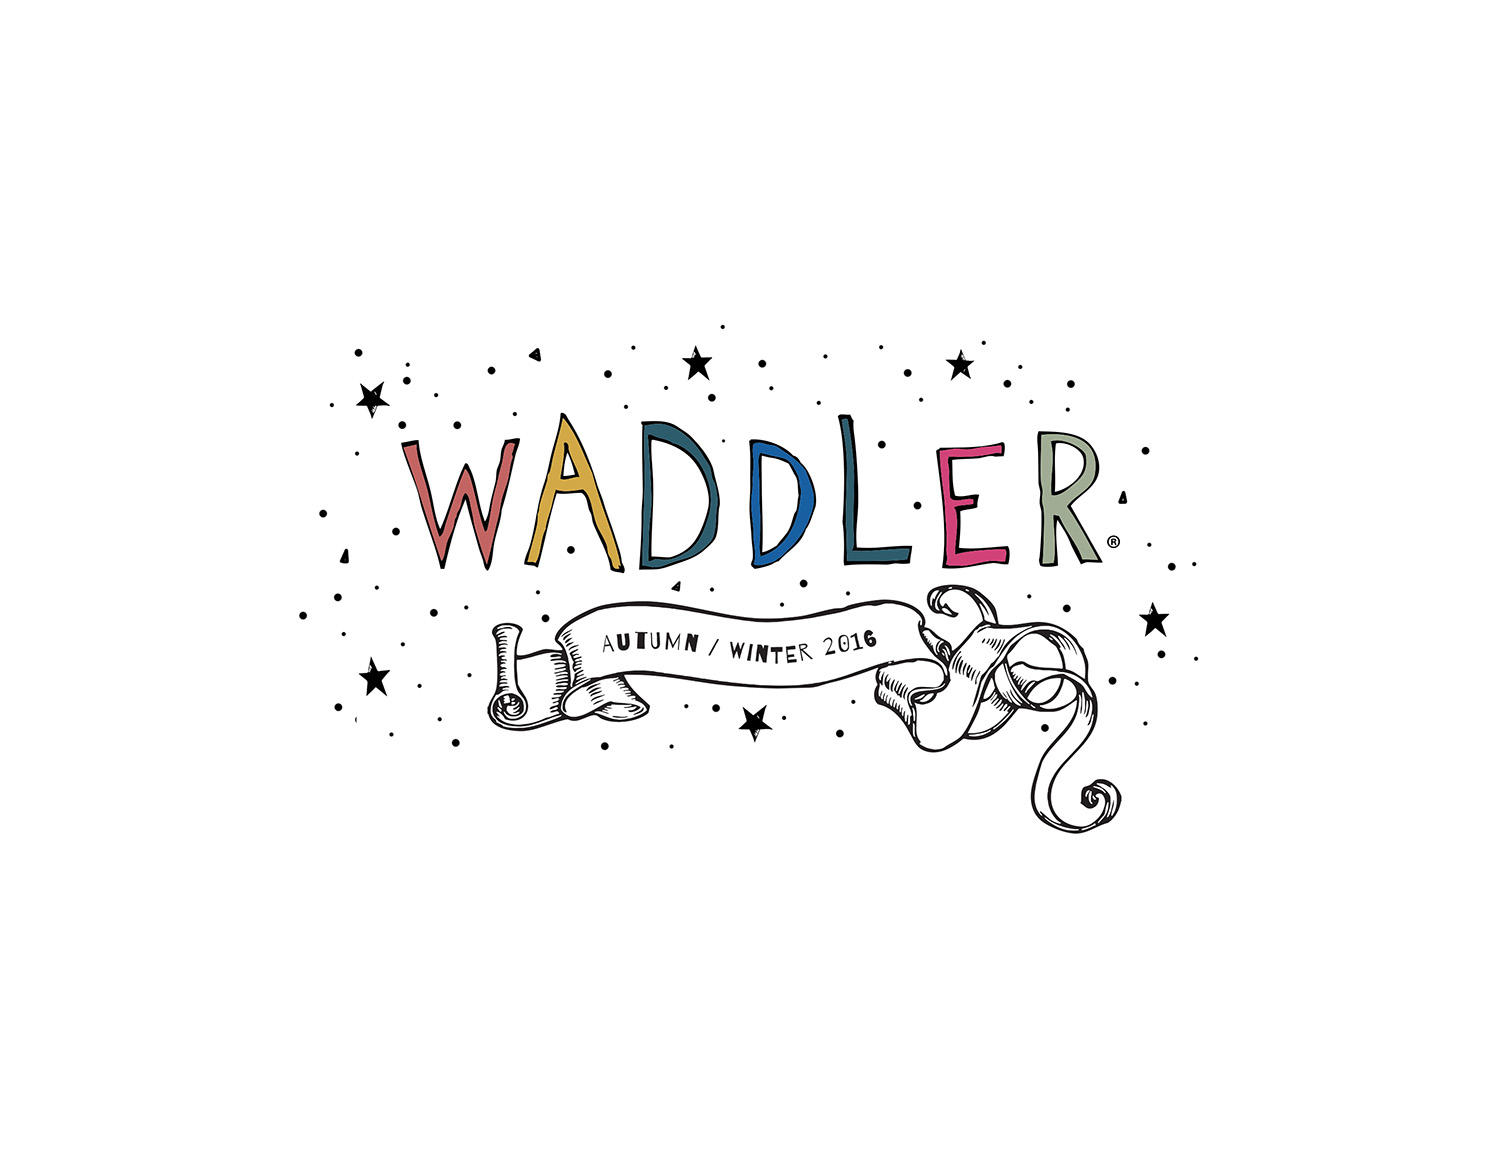 Waddler LB AW16 Version 03 For Print-1.jpg